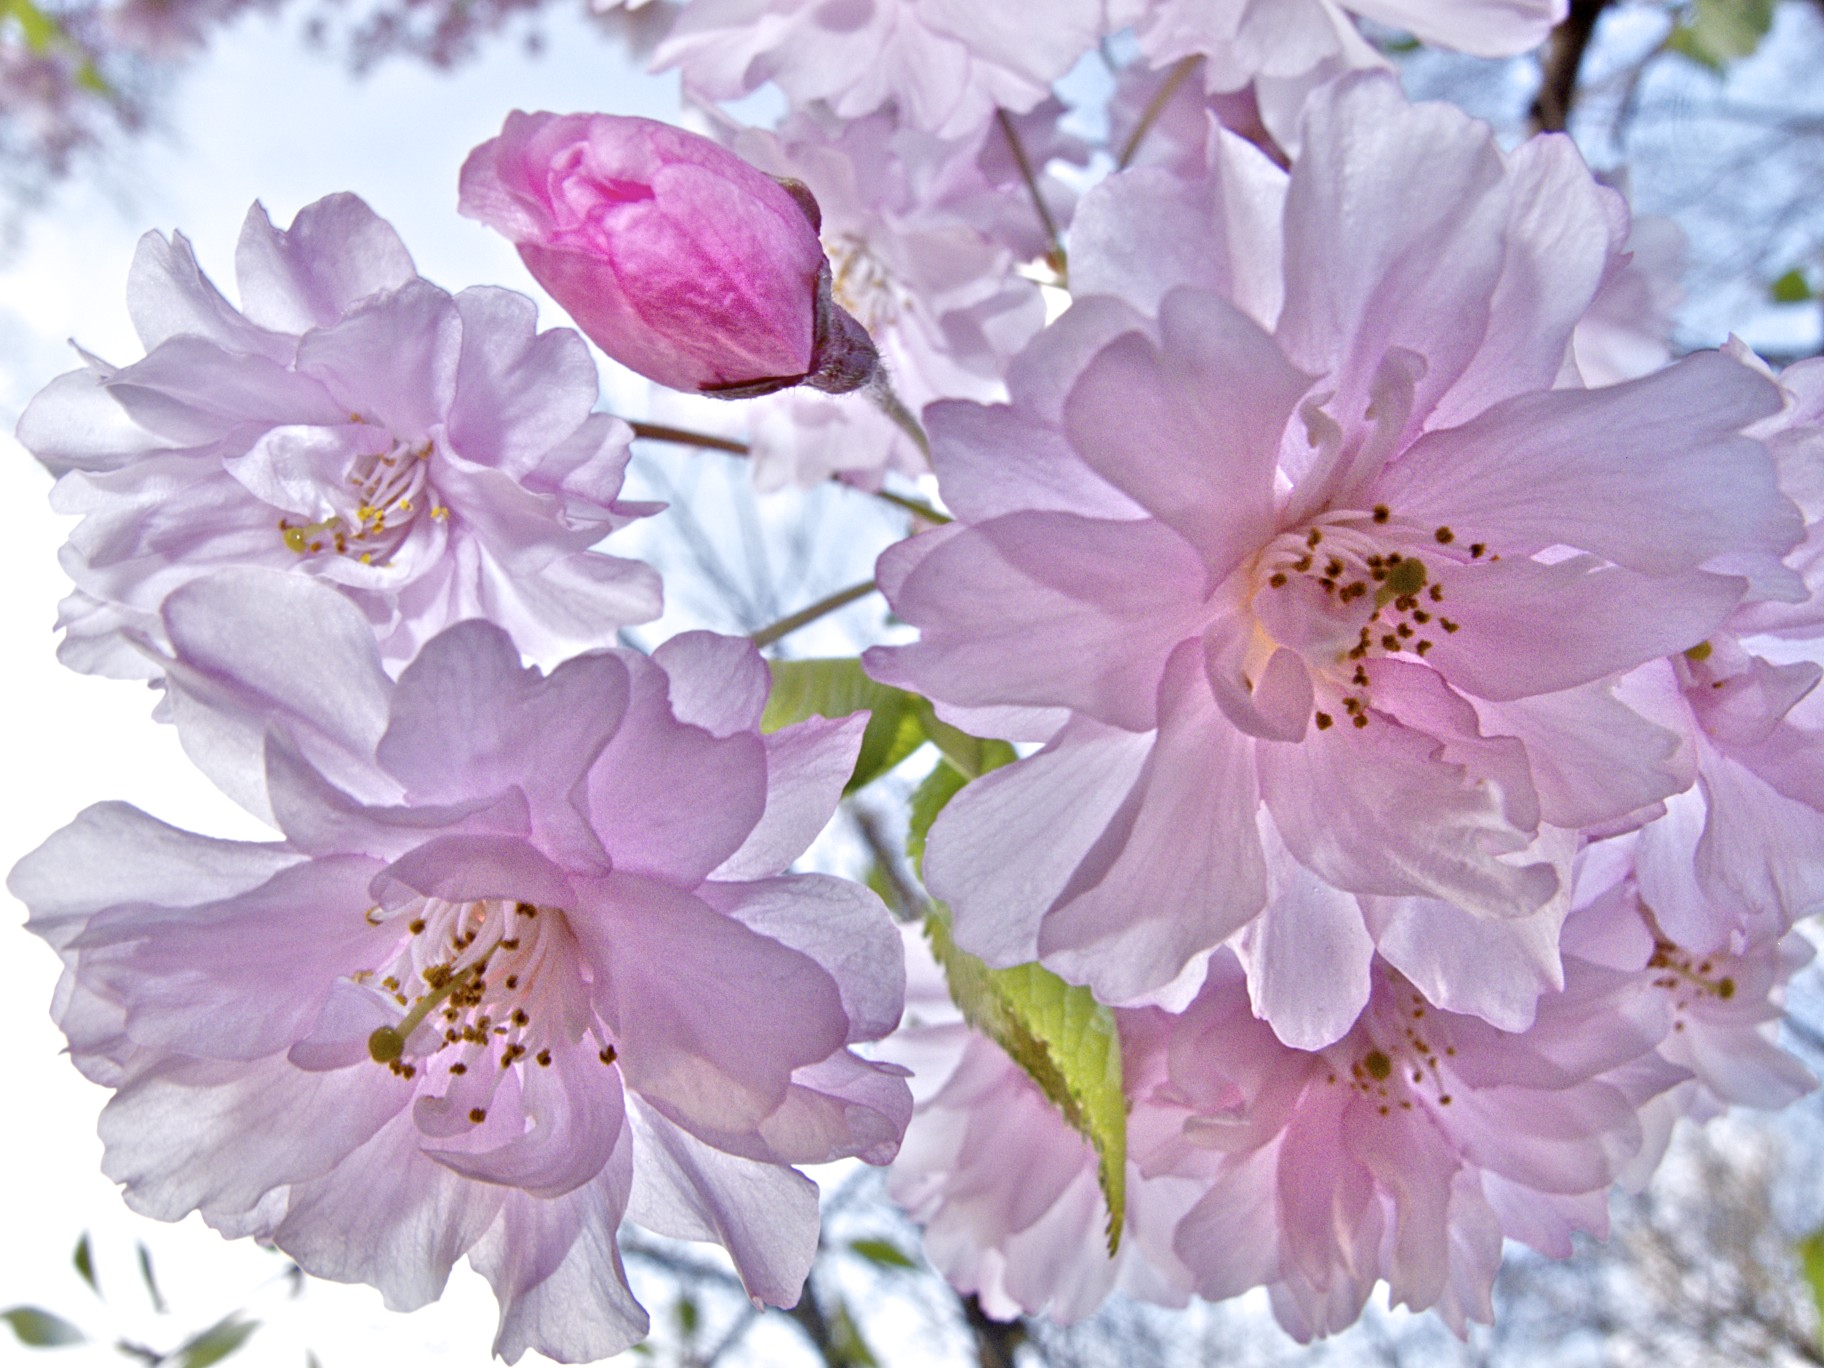 ©Richard Frank Cherry Blossoms IMG1055.jpg